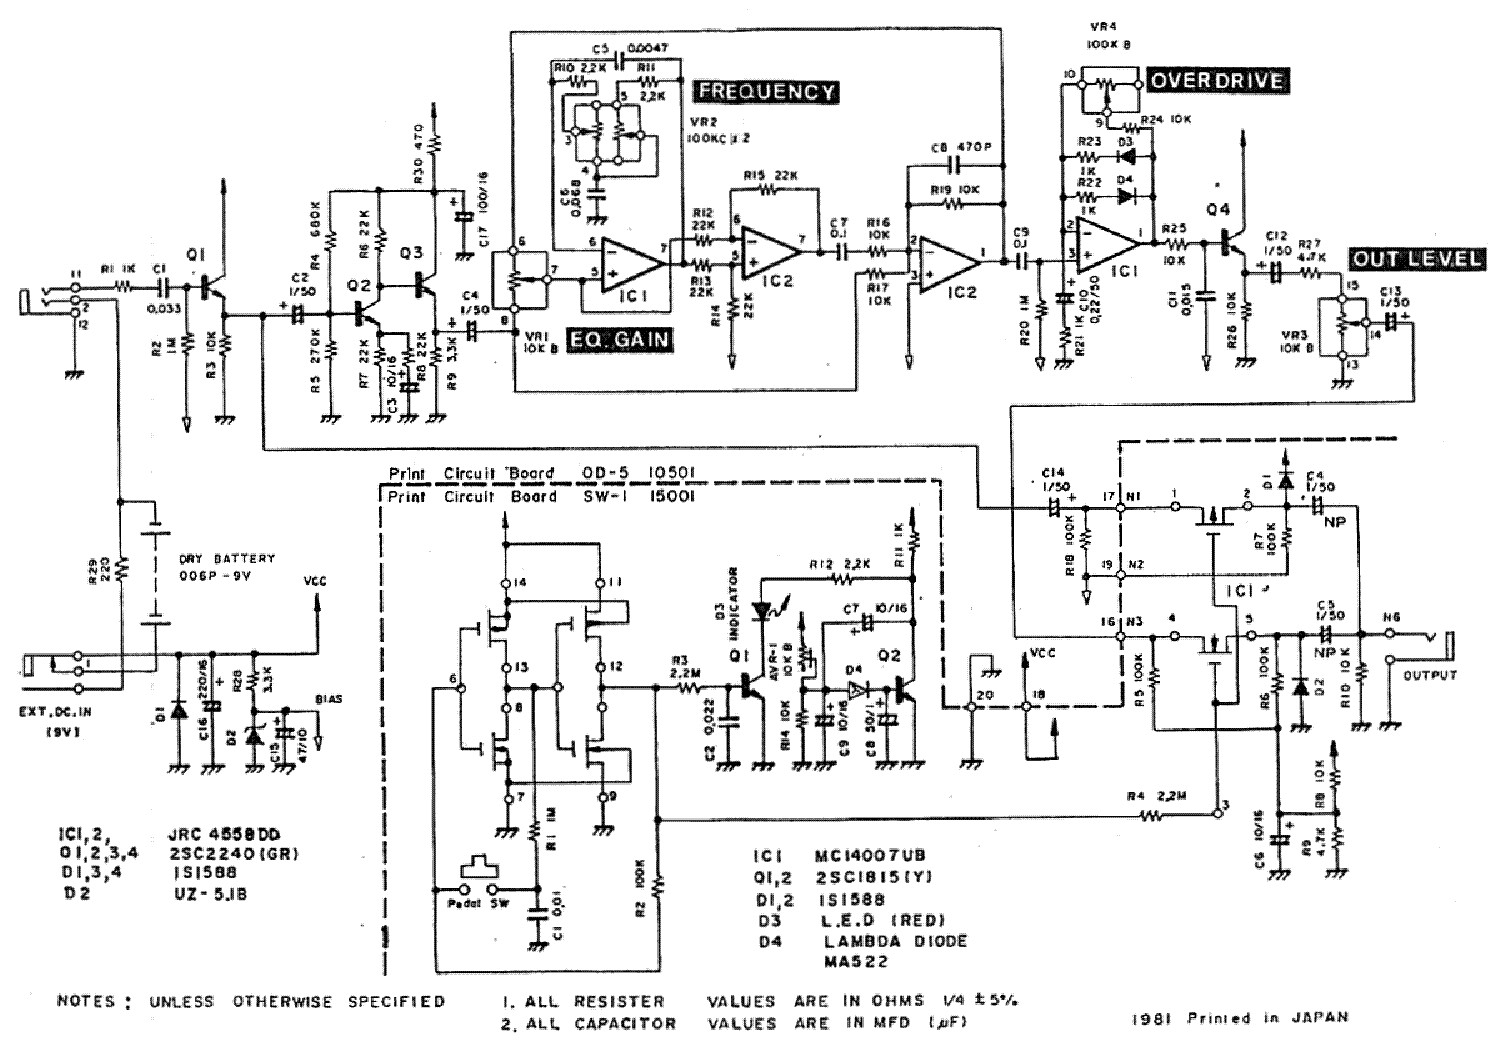 How to make a wiring diagram unique wiring diagram image pearl overdrive od05 guitar effects schematics service manual guitar effects schematics diagrams guitar effects schematics pdf cheapraybanclubmaster